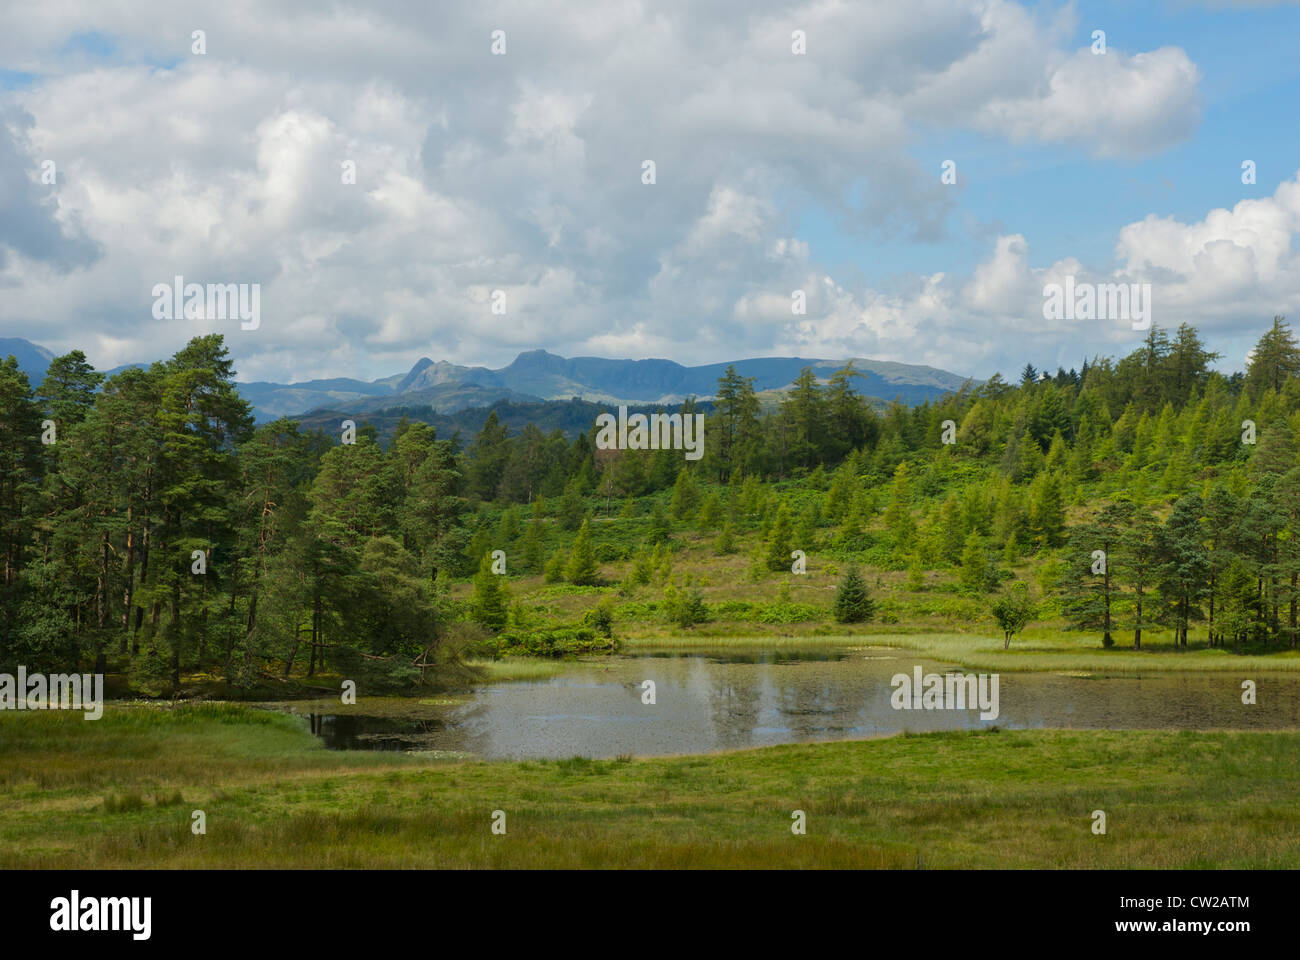 Wraymires Tarn on Claife Heights, Lake District National Park, Cumbria, England UK - Stock Image